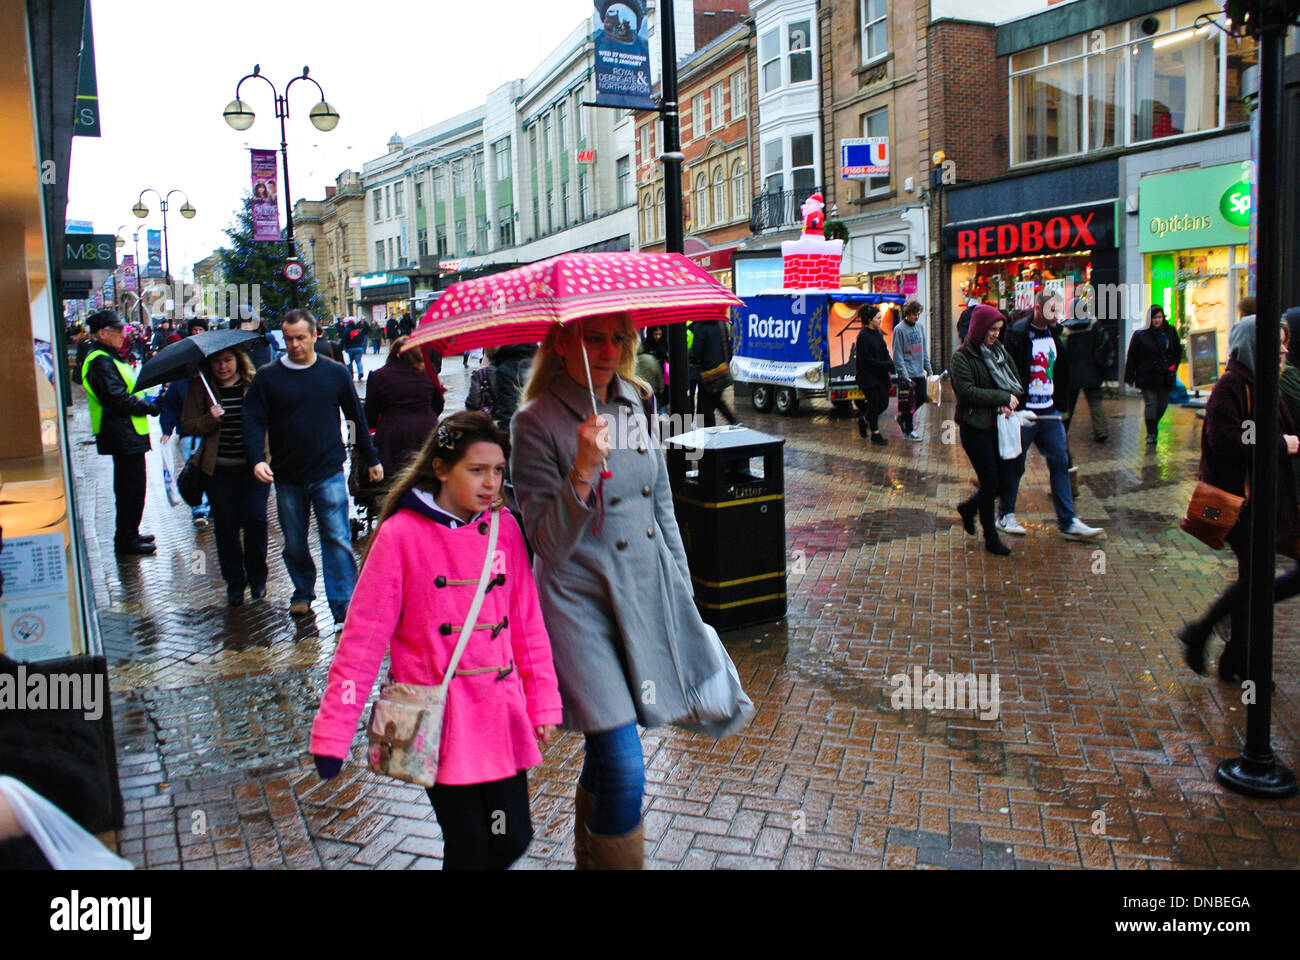 Northampton, UK. 21st Dec 2013. Christmas shoppers get wet buying presents on the busiest retail day of the year. Credit:  Bigred/Alamy Live News - Stock Image